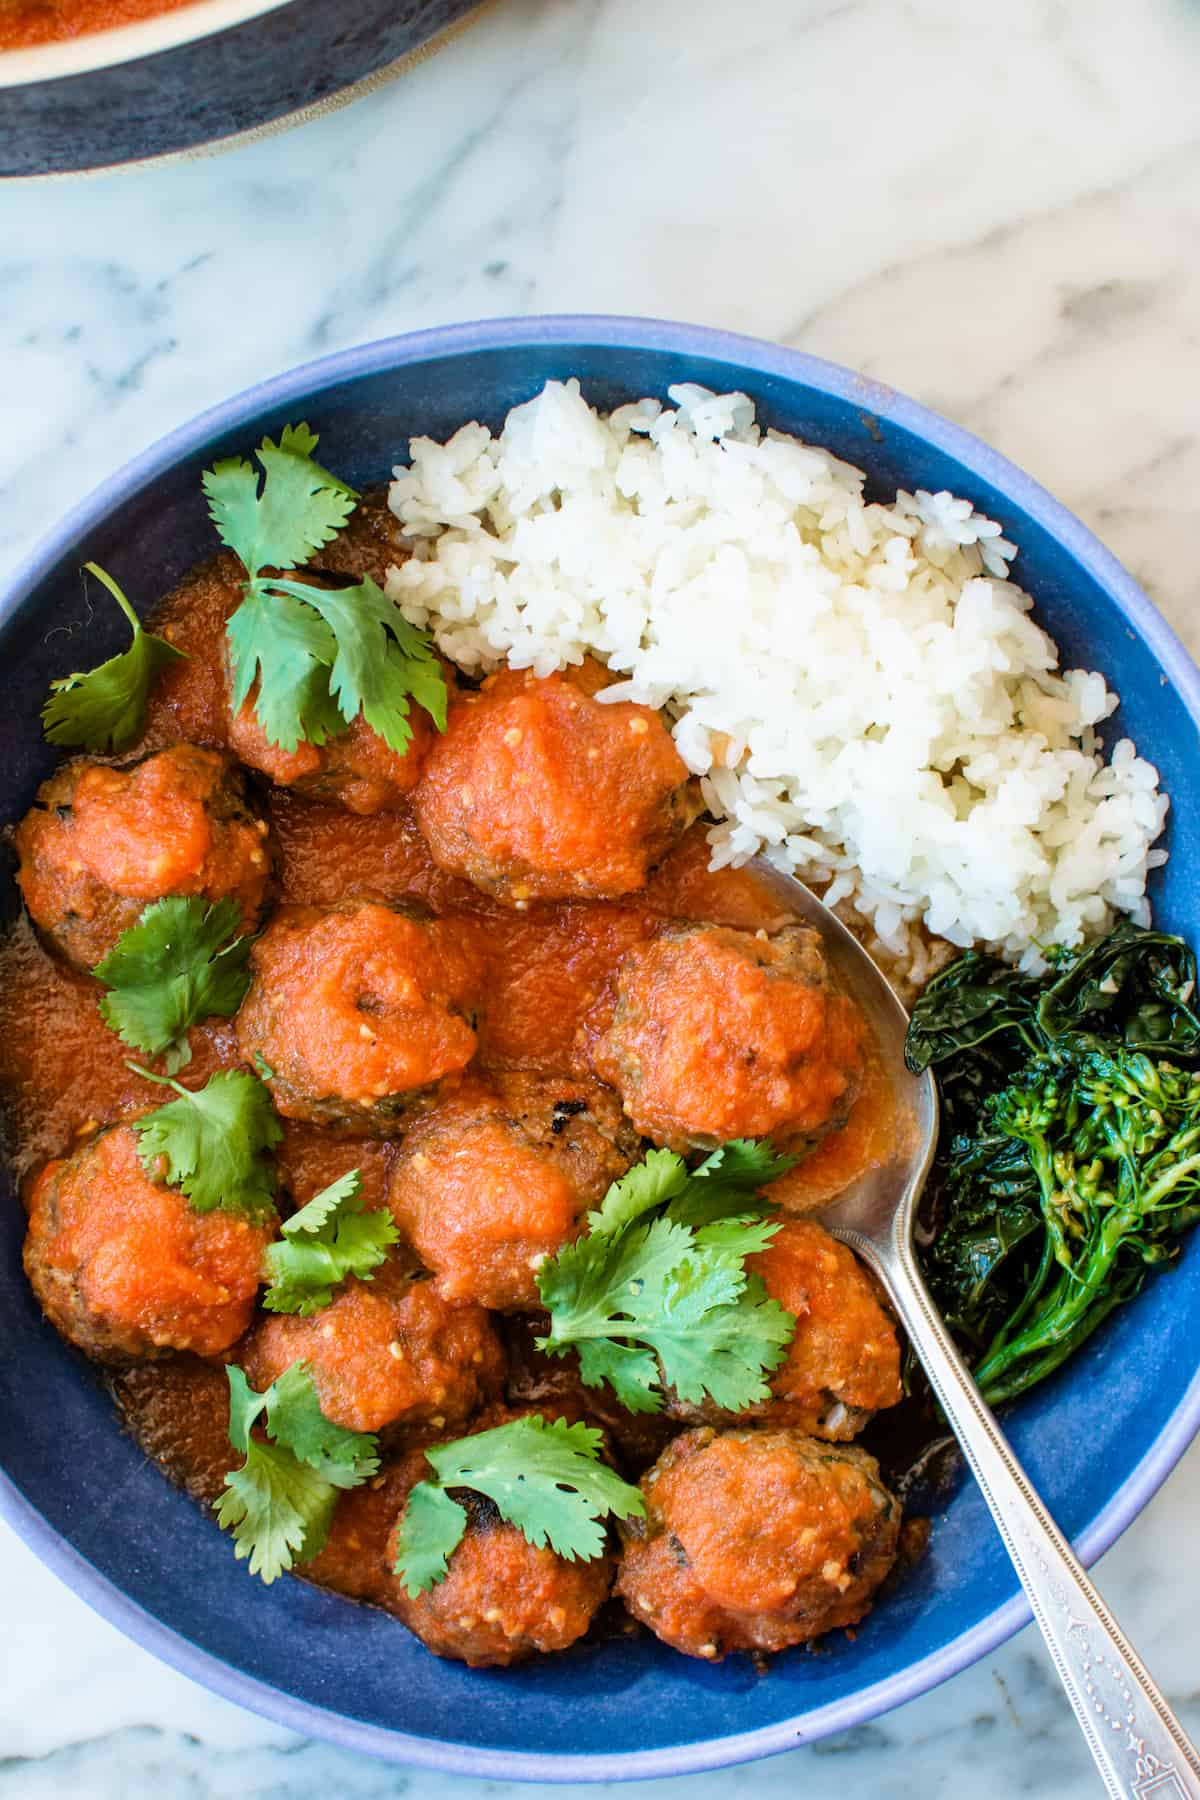 Overhead image of a blue bowl with meatballs in tomato sauce in it along with some white rice and green vegetables sitting on a marble table.